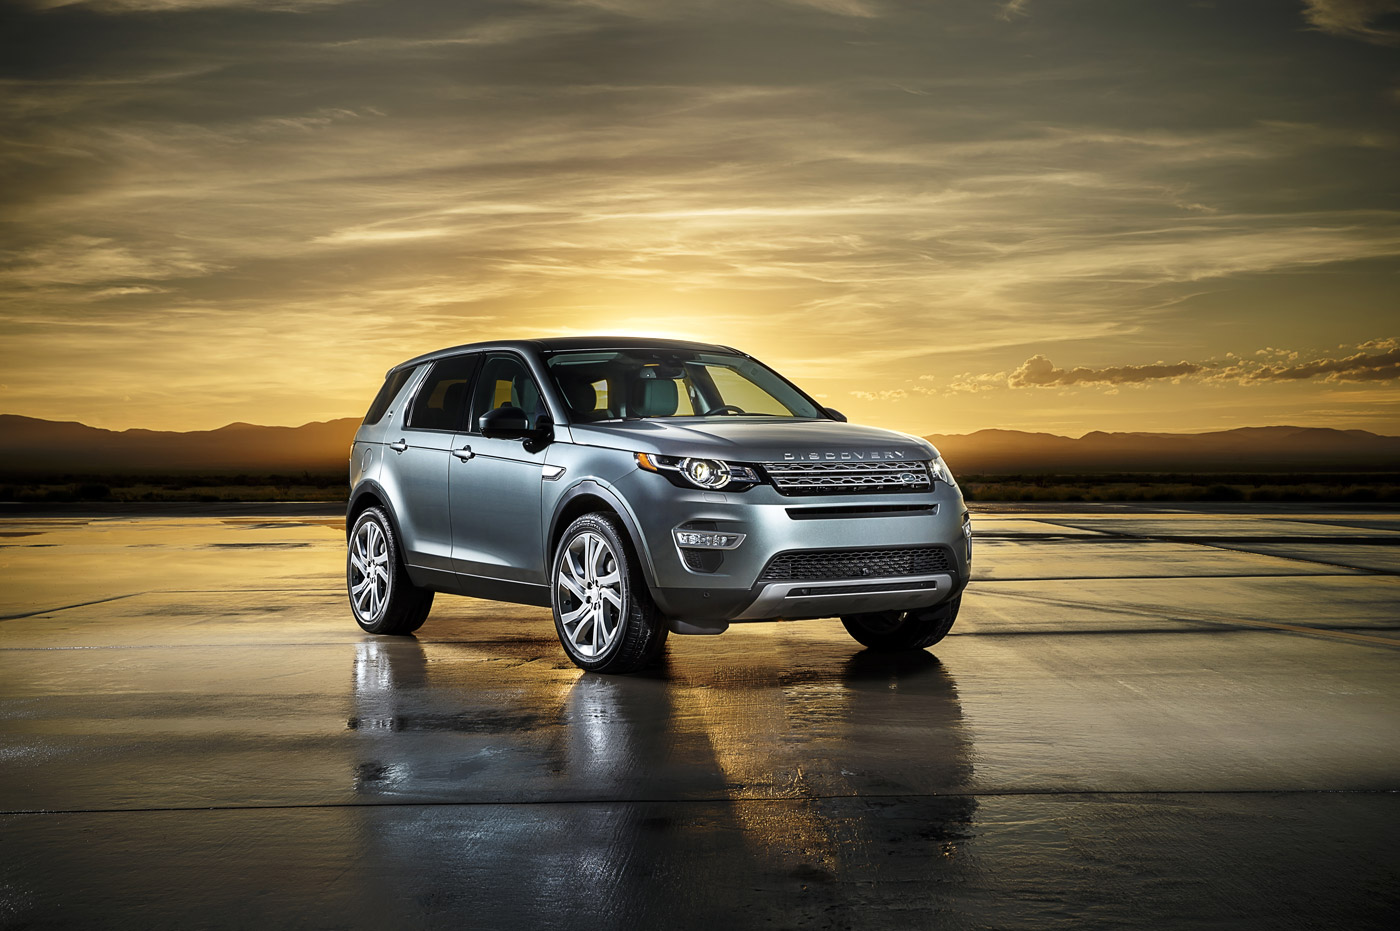 <p>Early morning shot with the Land Rover Discovery Sport on the runway at Spaceport New Mexico.</p>